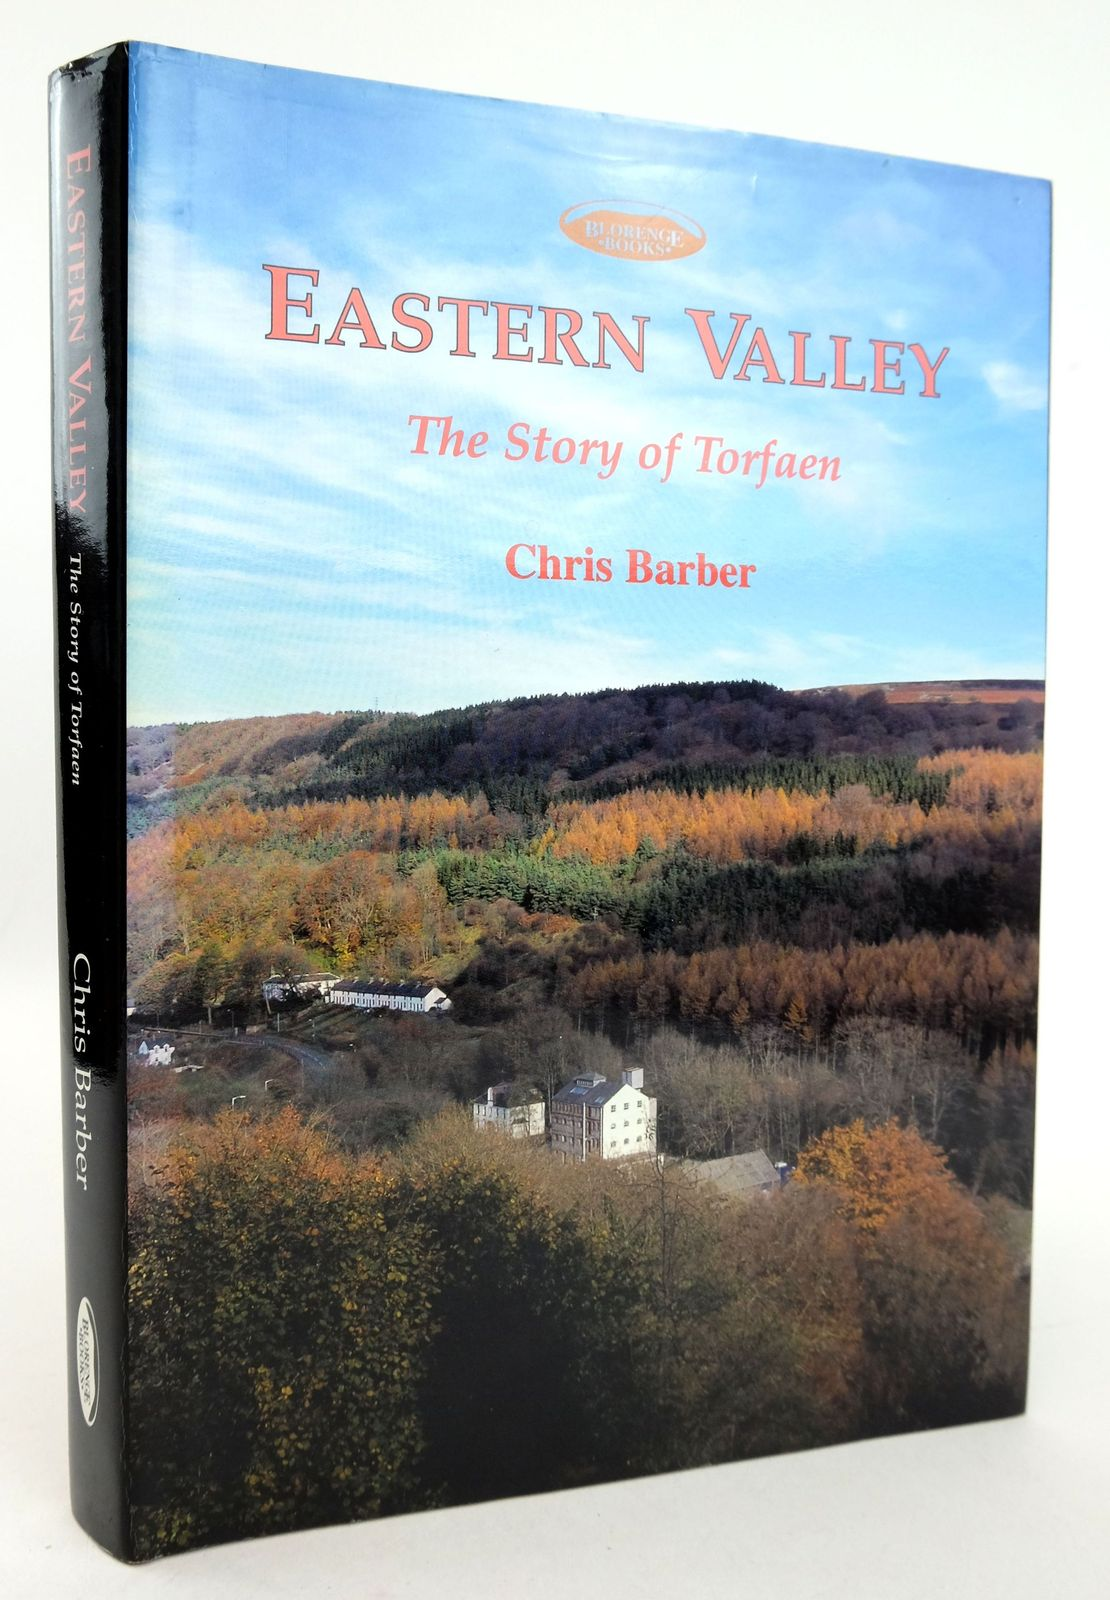 Photo of EASTERN VALLEY: THE STORY OF TORFAEN written by Barber, Chris published by Blorenge Books (STOCK CODE: 1819383)  for sale by Stella & Rose's Books